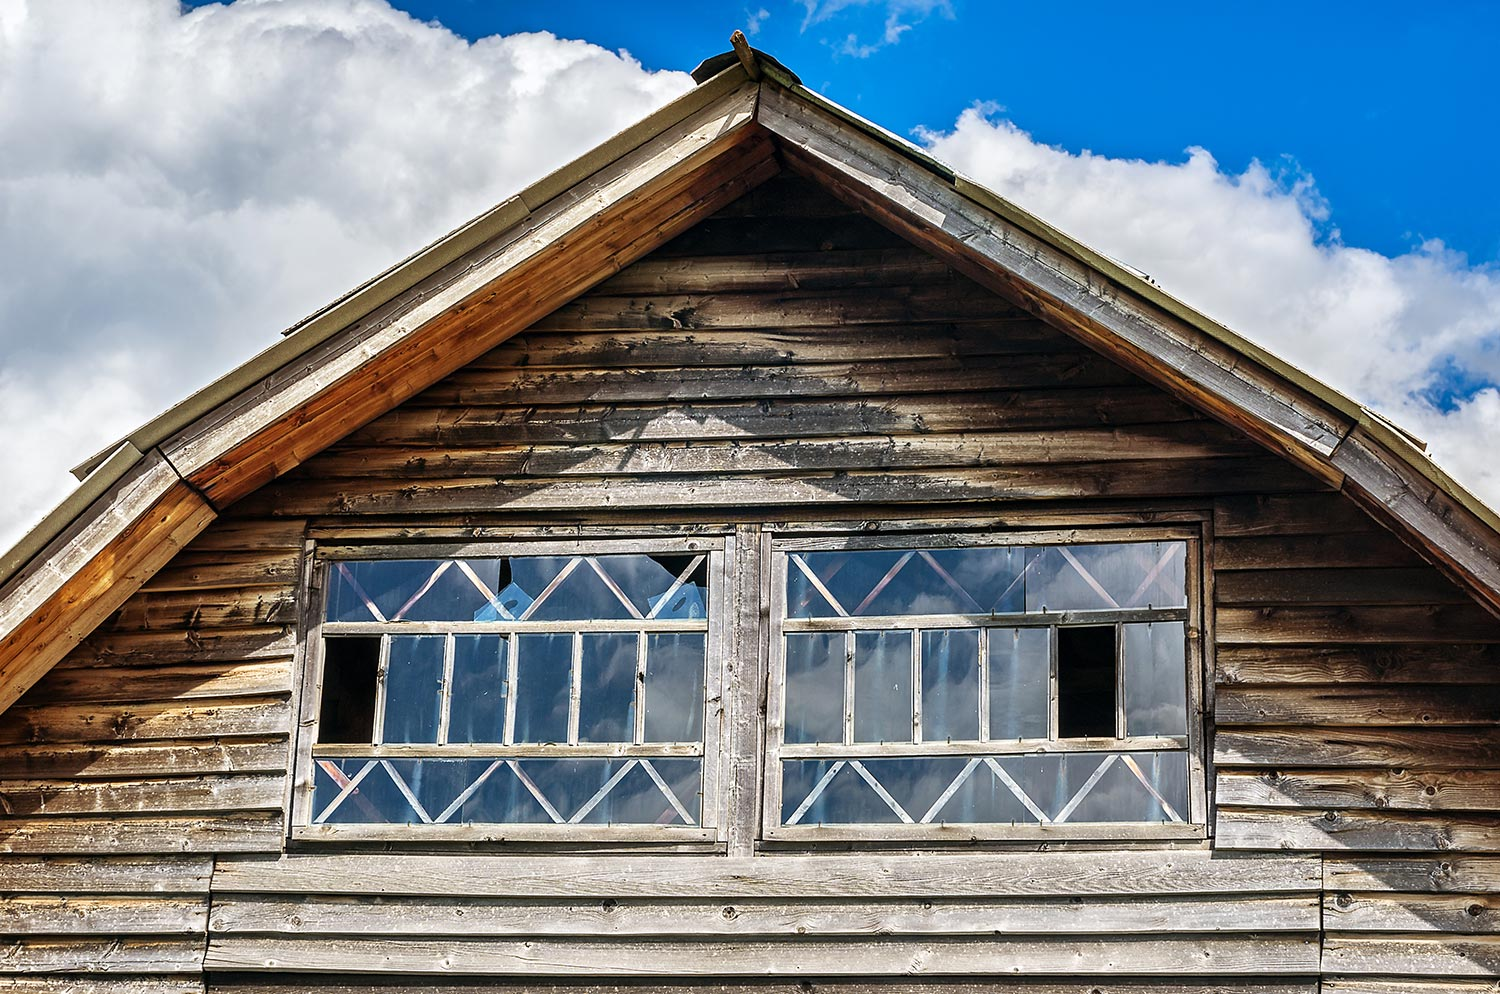 Gable end of an aged cottage with horizontal wooden siding and windows